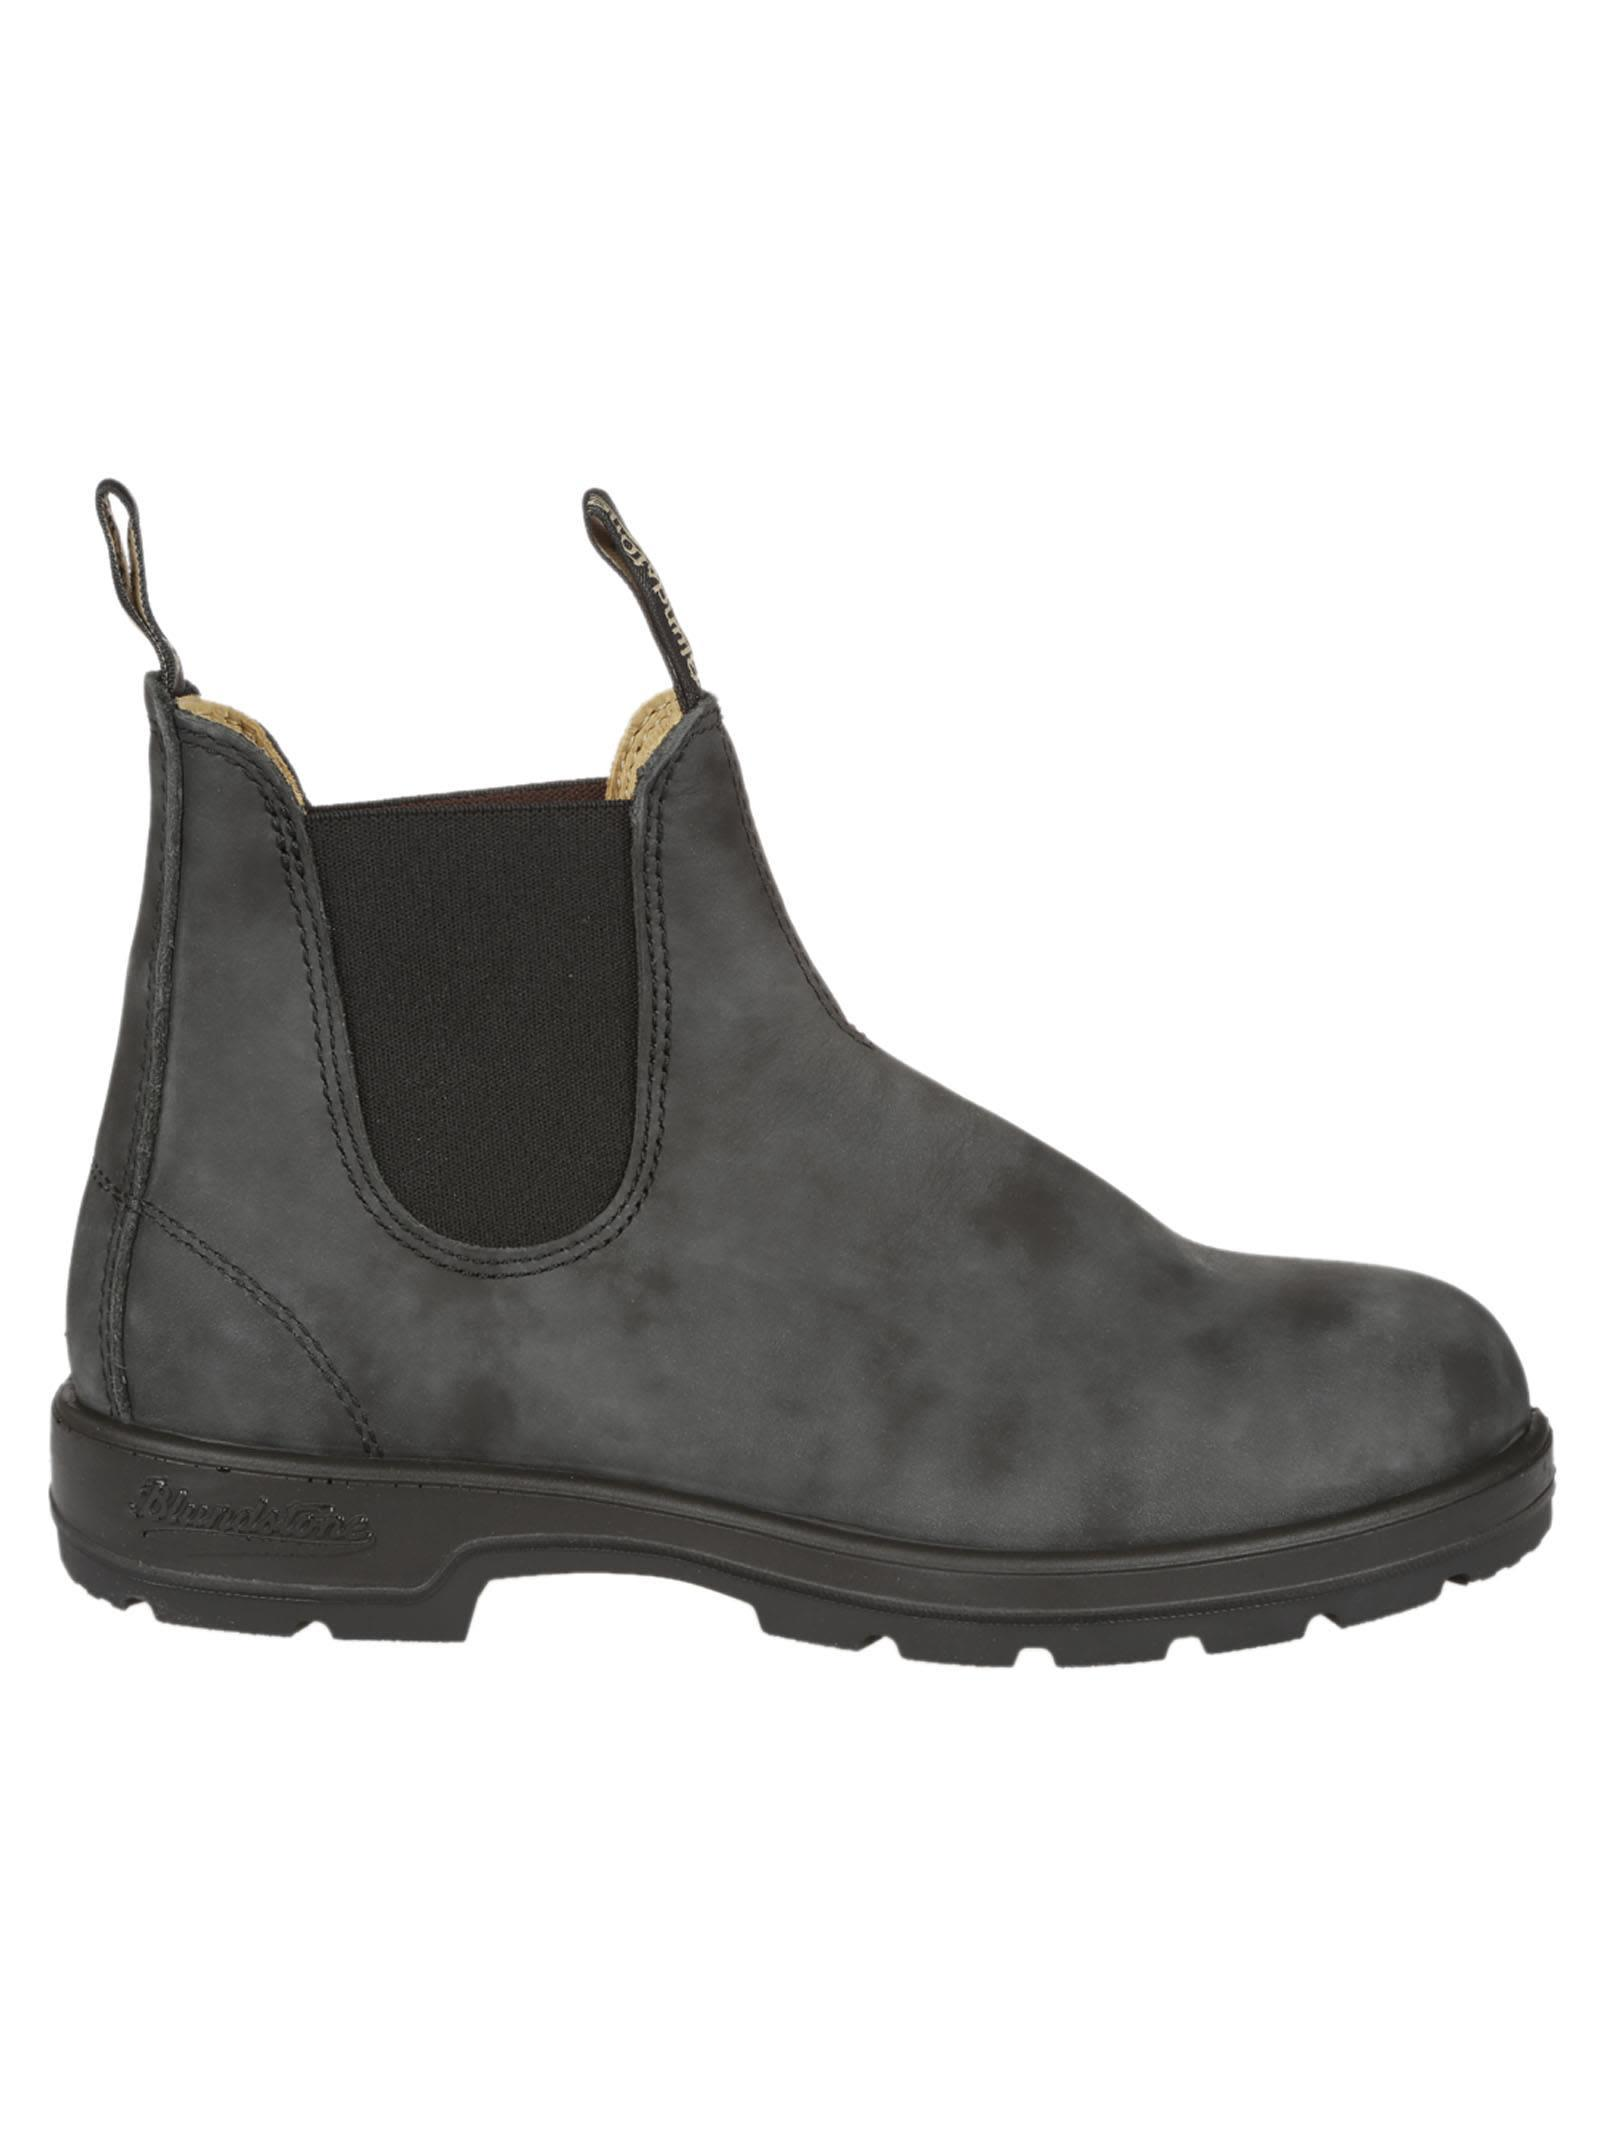 Blundstone Classic Ankle Boots In Rustic Black